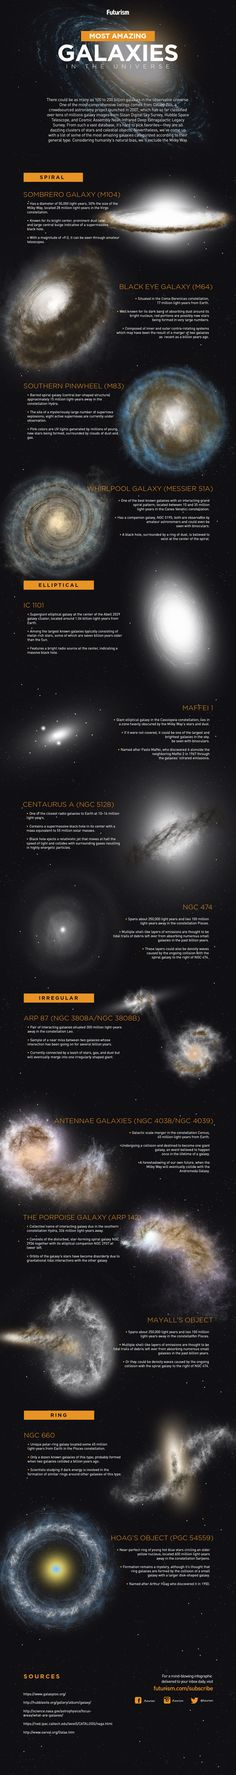 Amazing Galaxies